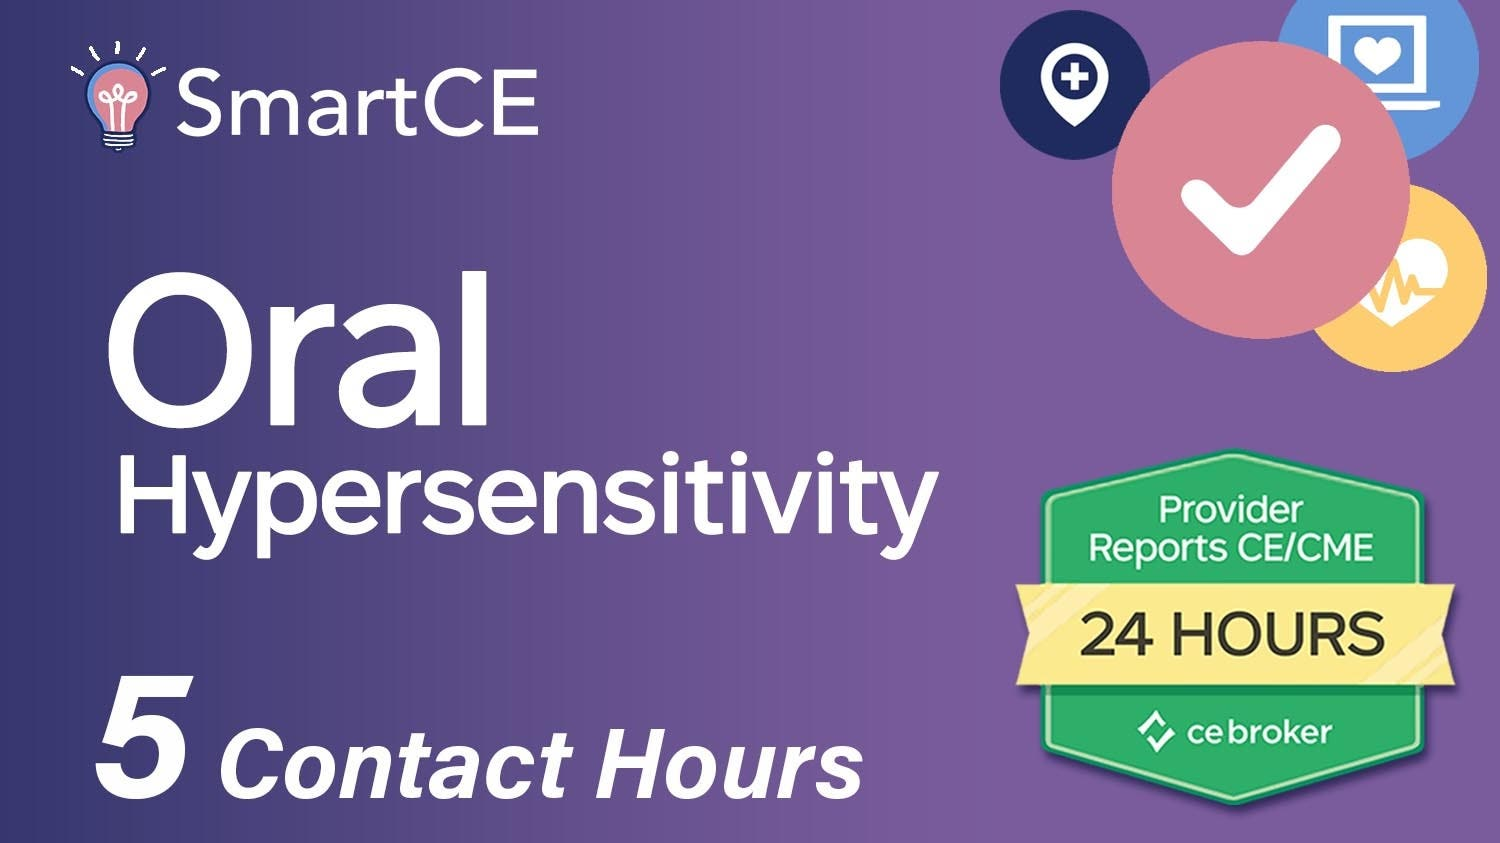 Oral Hypersensitivity - 5 Contact Hours /20-685265